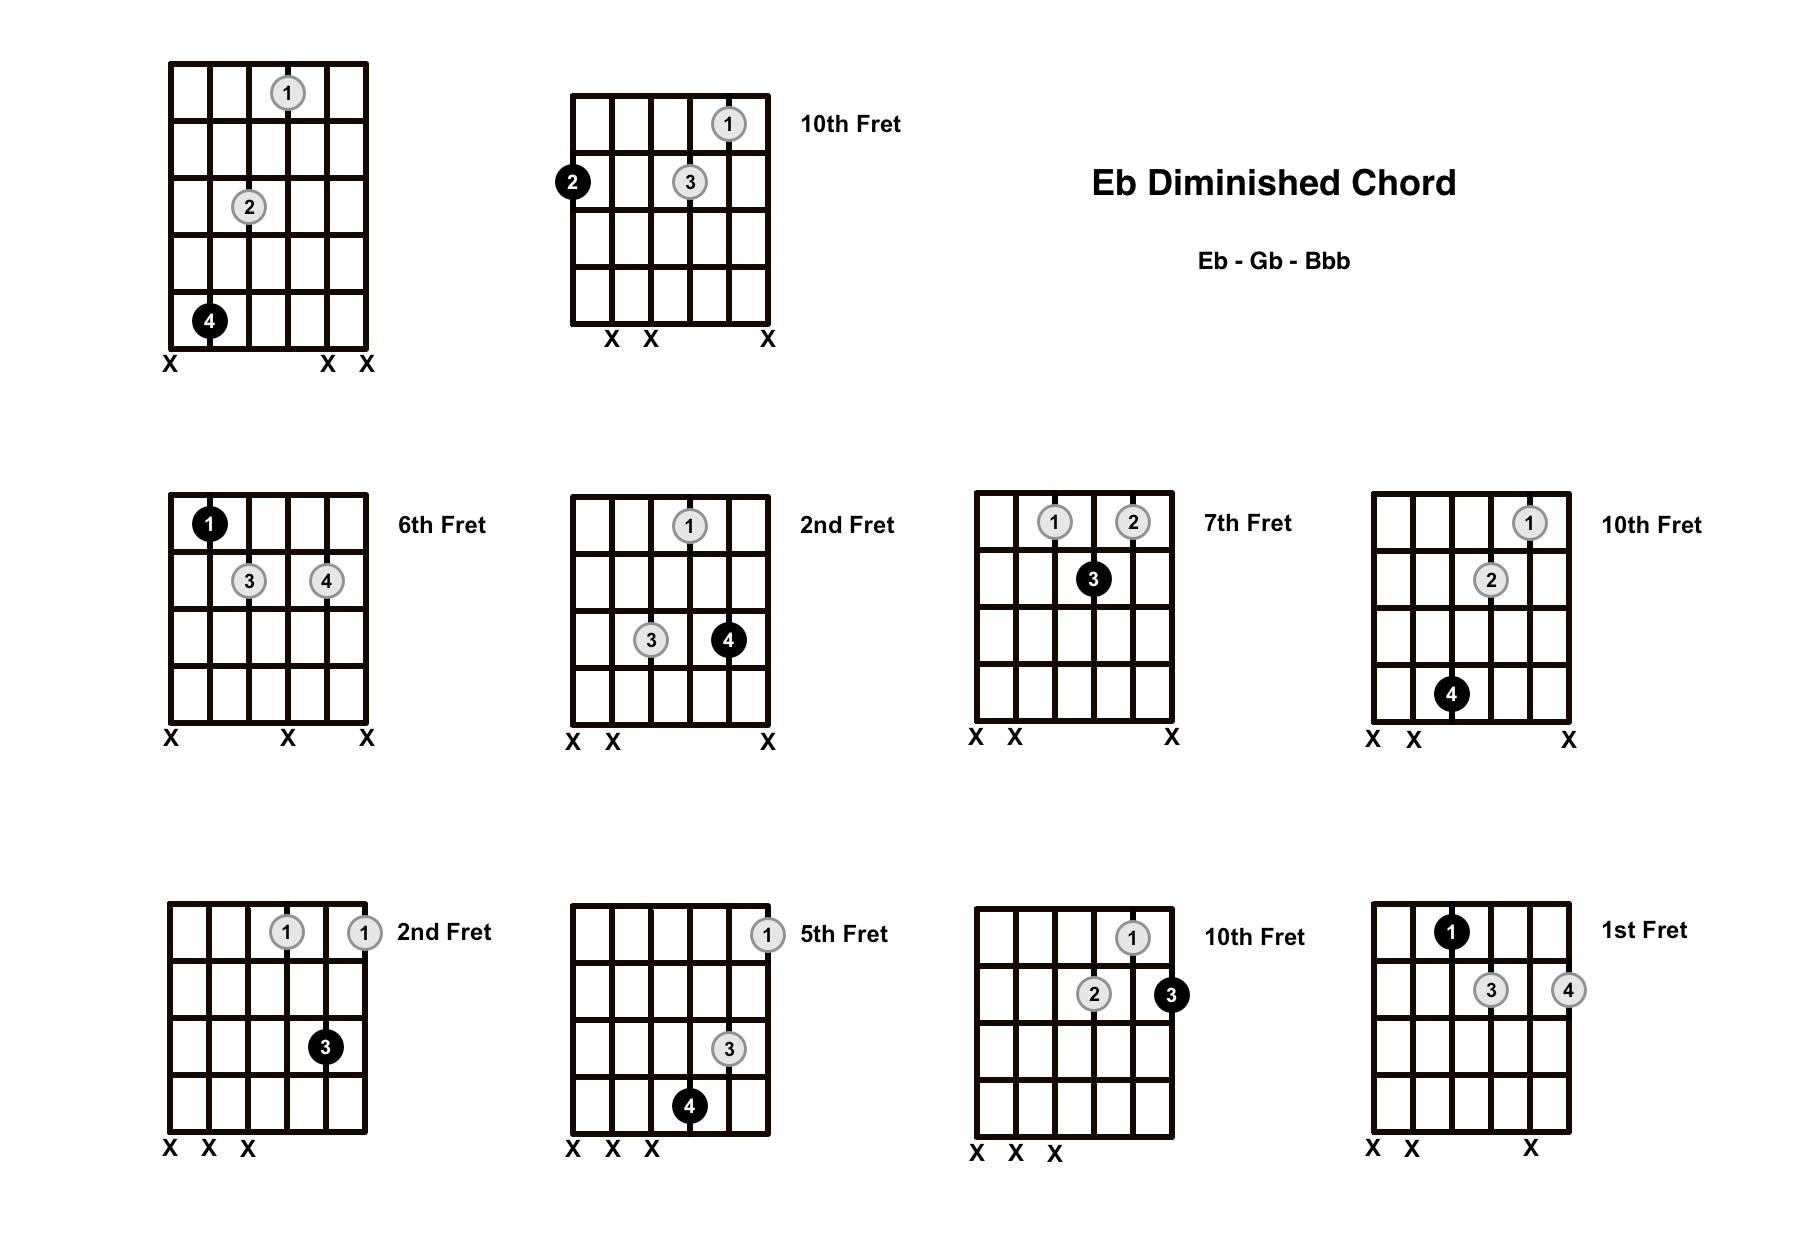 E Flat Diminished Chord on the Guitar (Eb dim) – Diagrams, Finger Positions, Theory